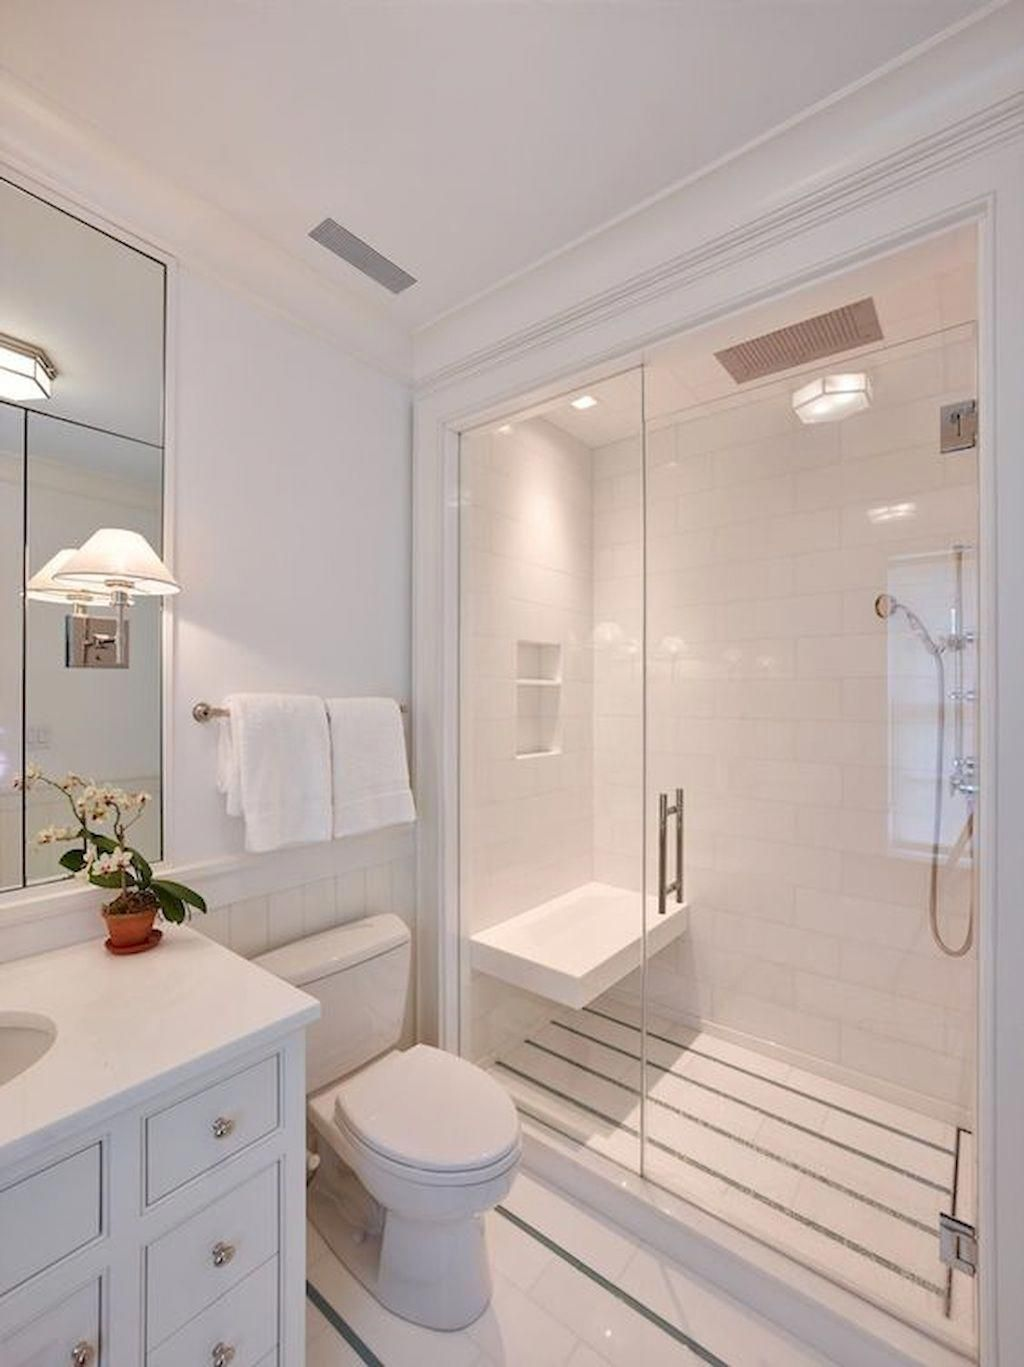 31 Best Inspire Ideas To Remodel Your Bathroom Shower Bathroomdesignideas Basement Bathroom Remodeling Small Master Bathroom Bathroom Remodel Shower